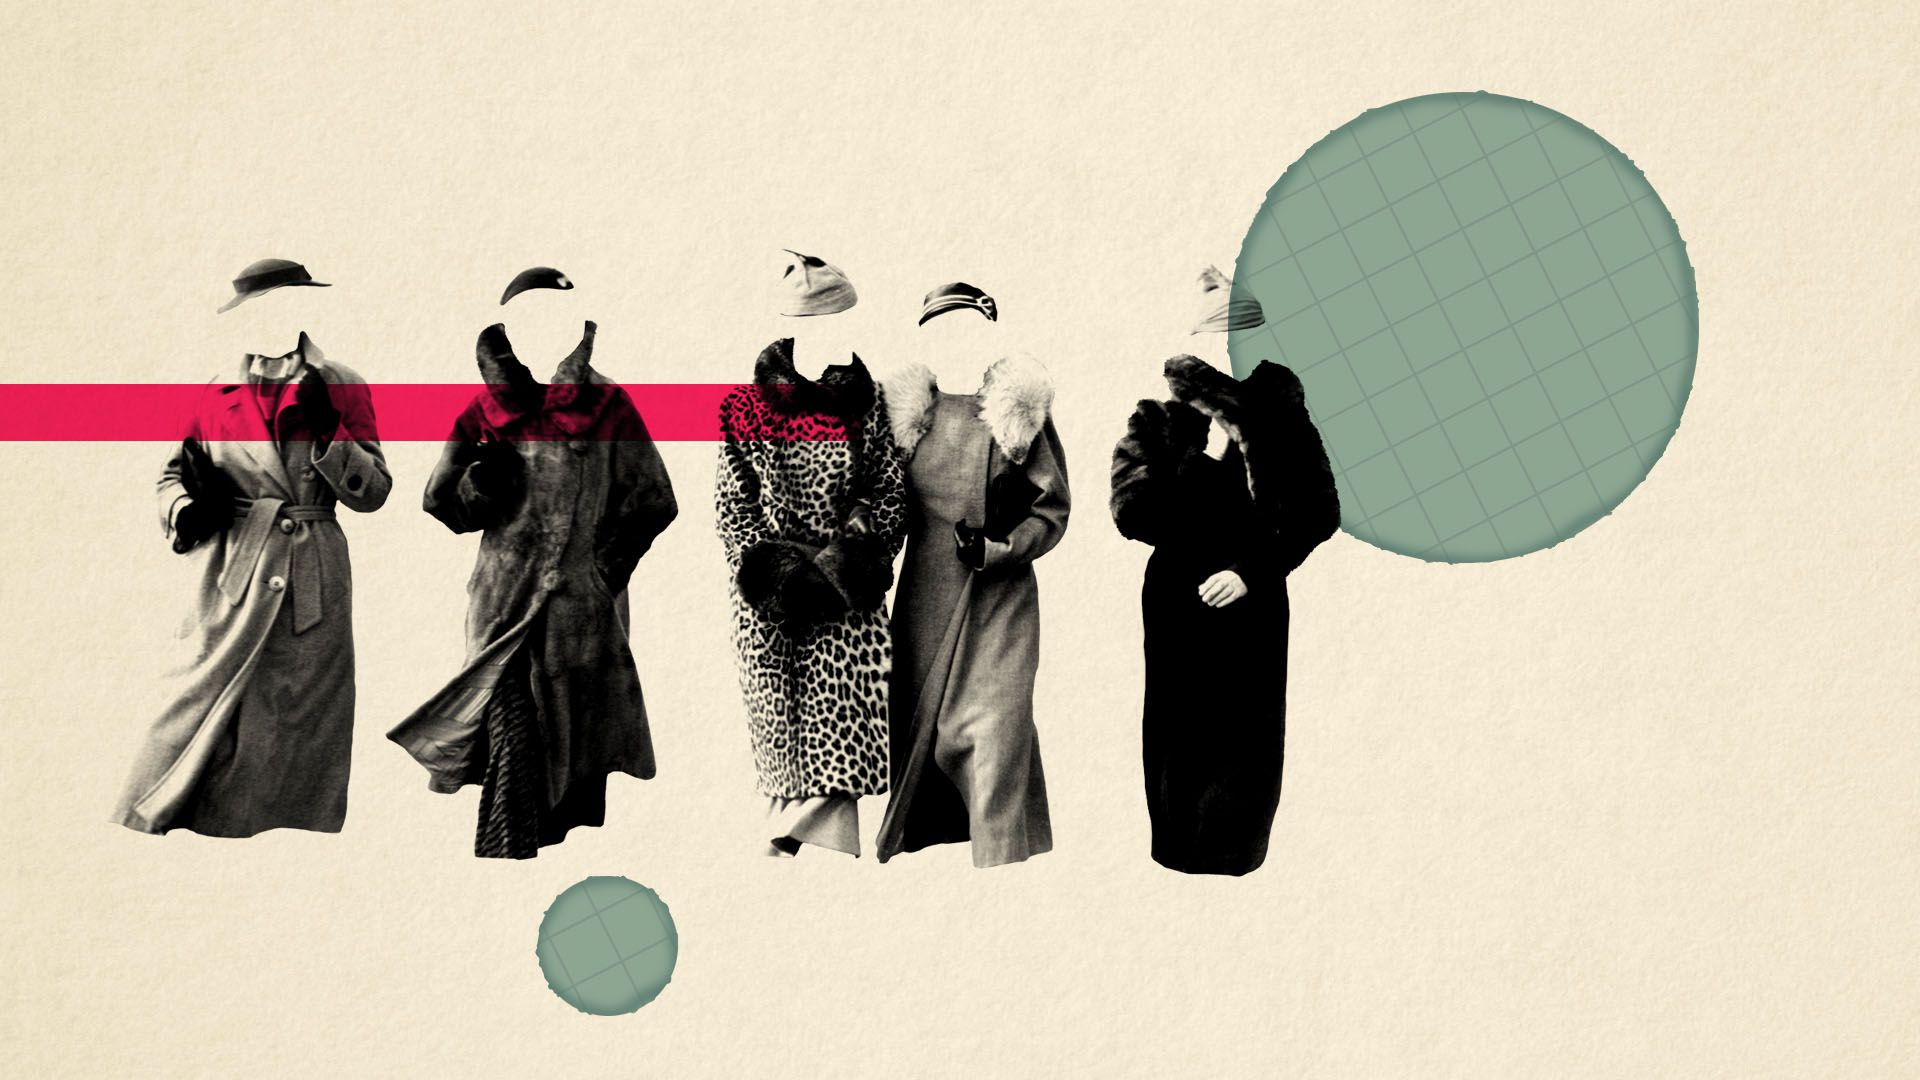 Illustration of five women in vintage clothing